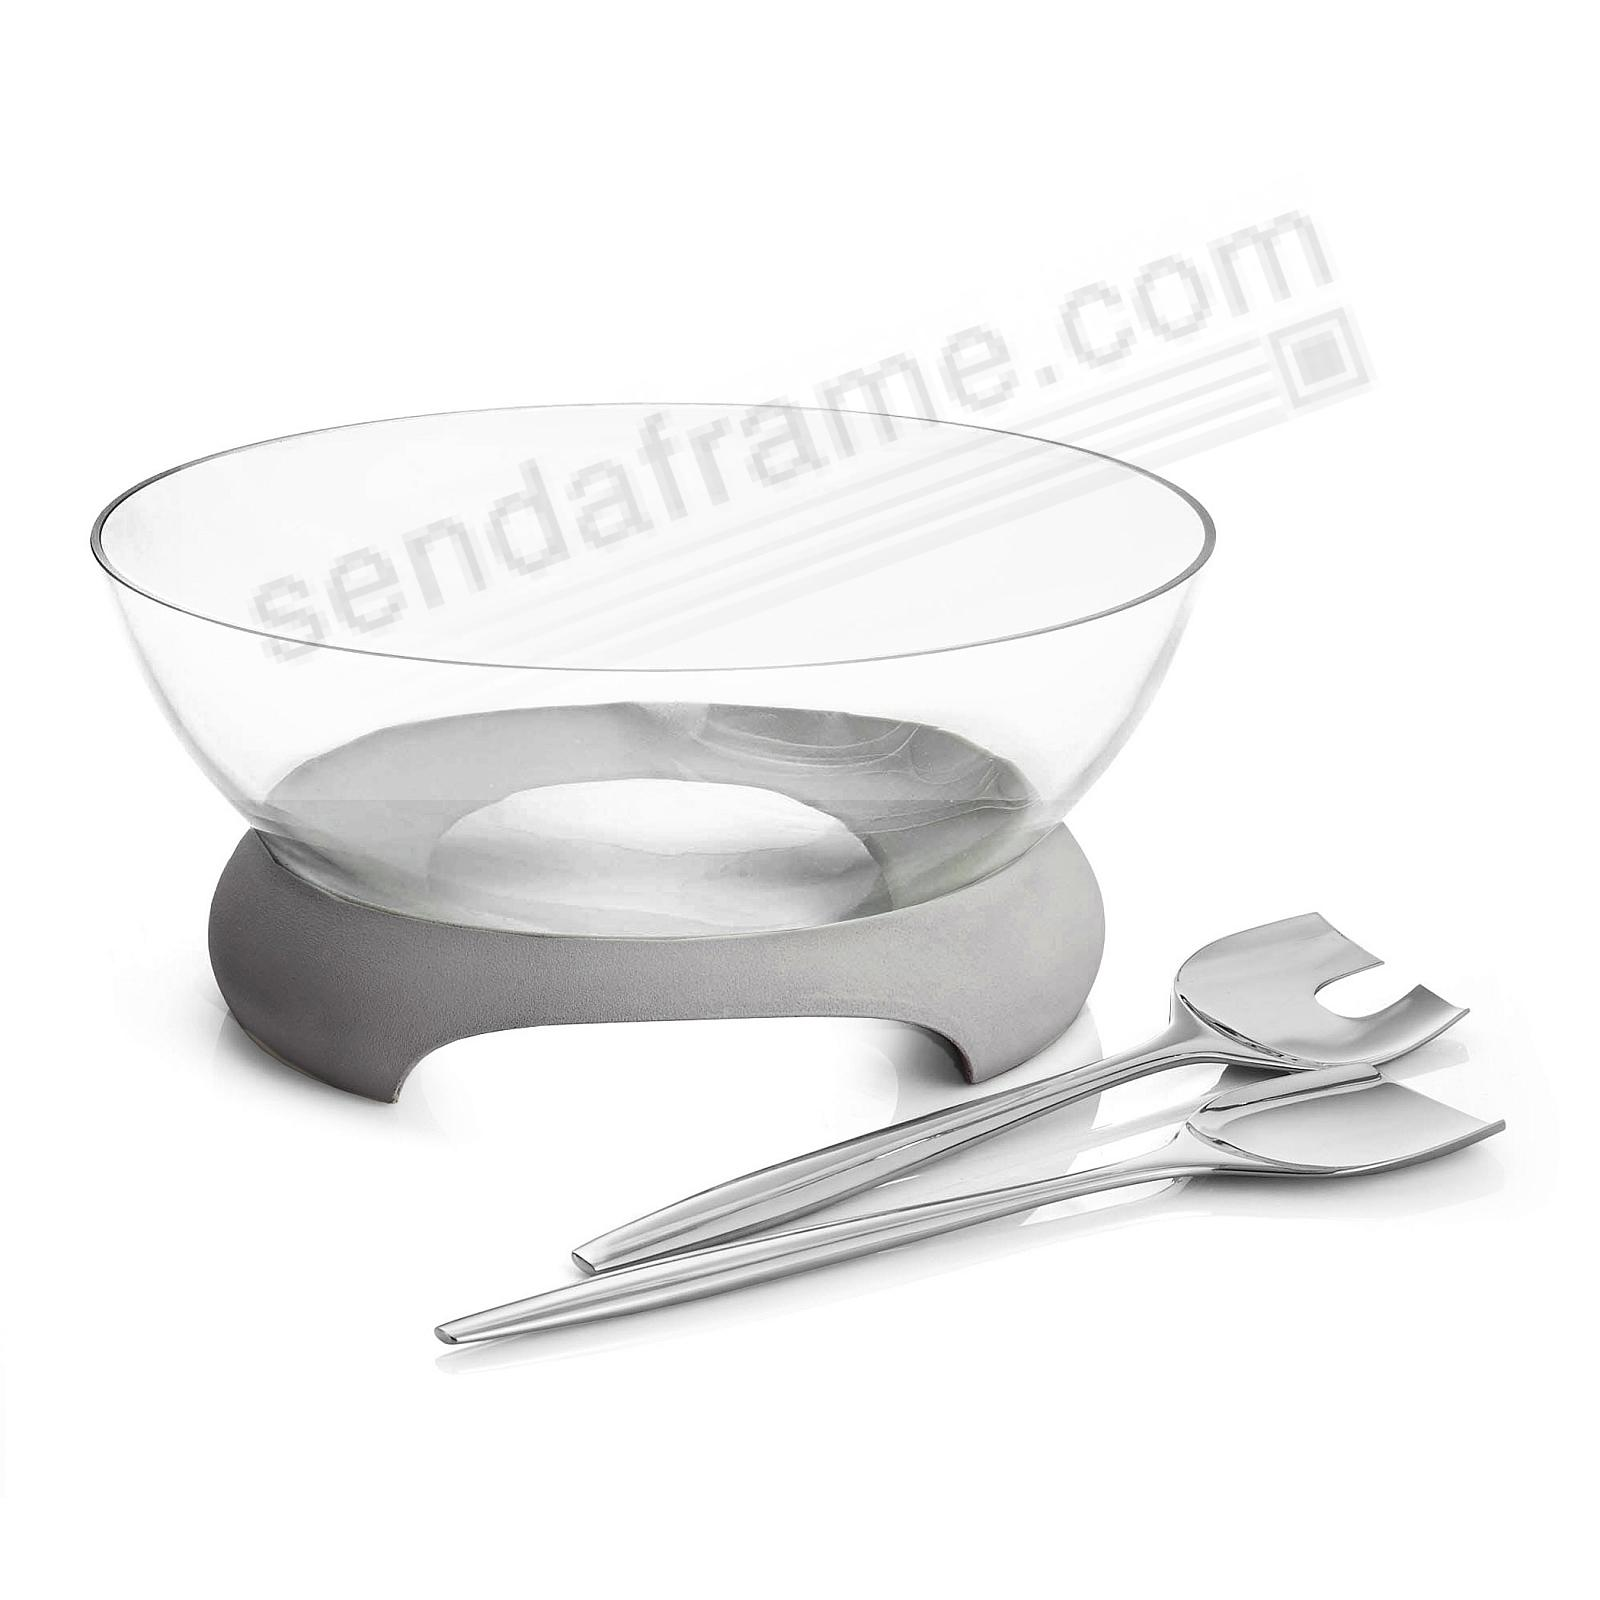 The FORTE GLASS SALAD BOWL w/SERVERS crafted by Nambe®